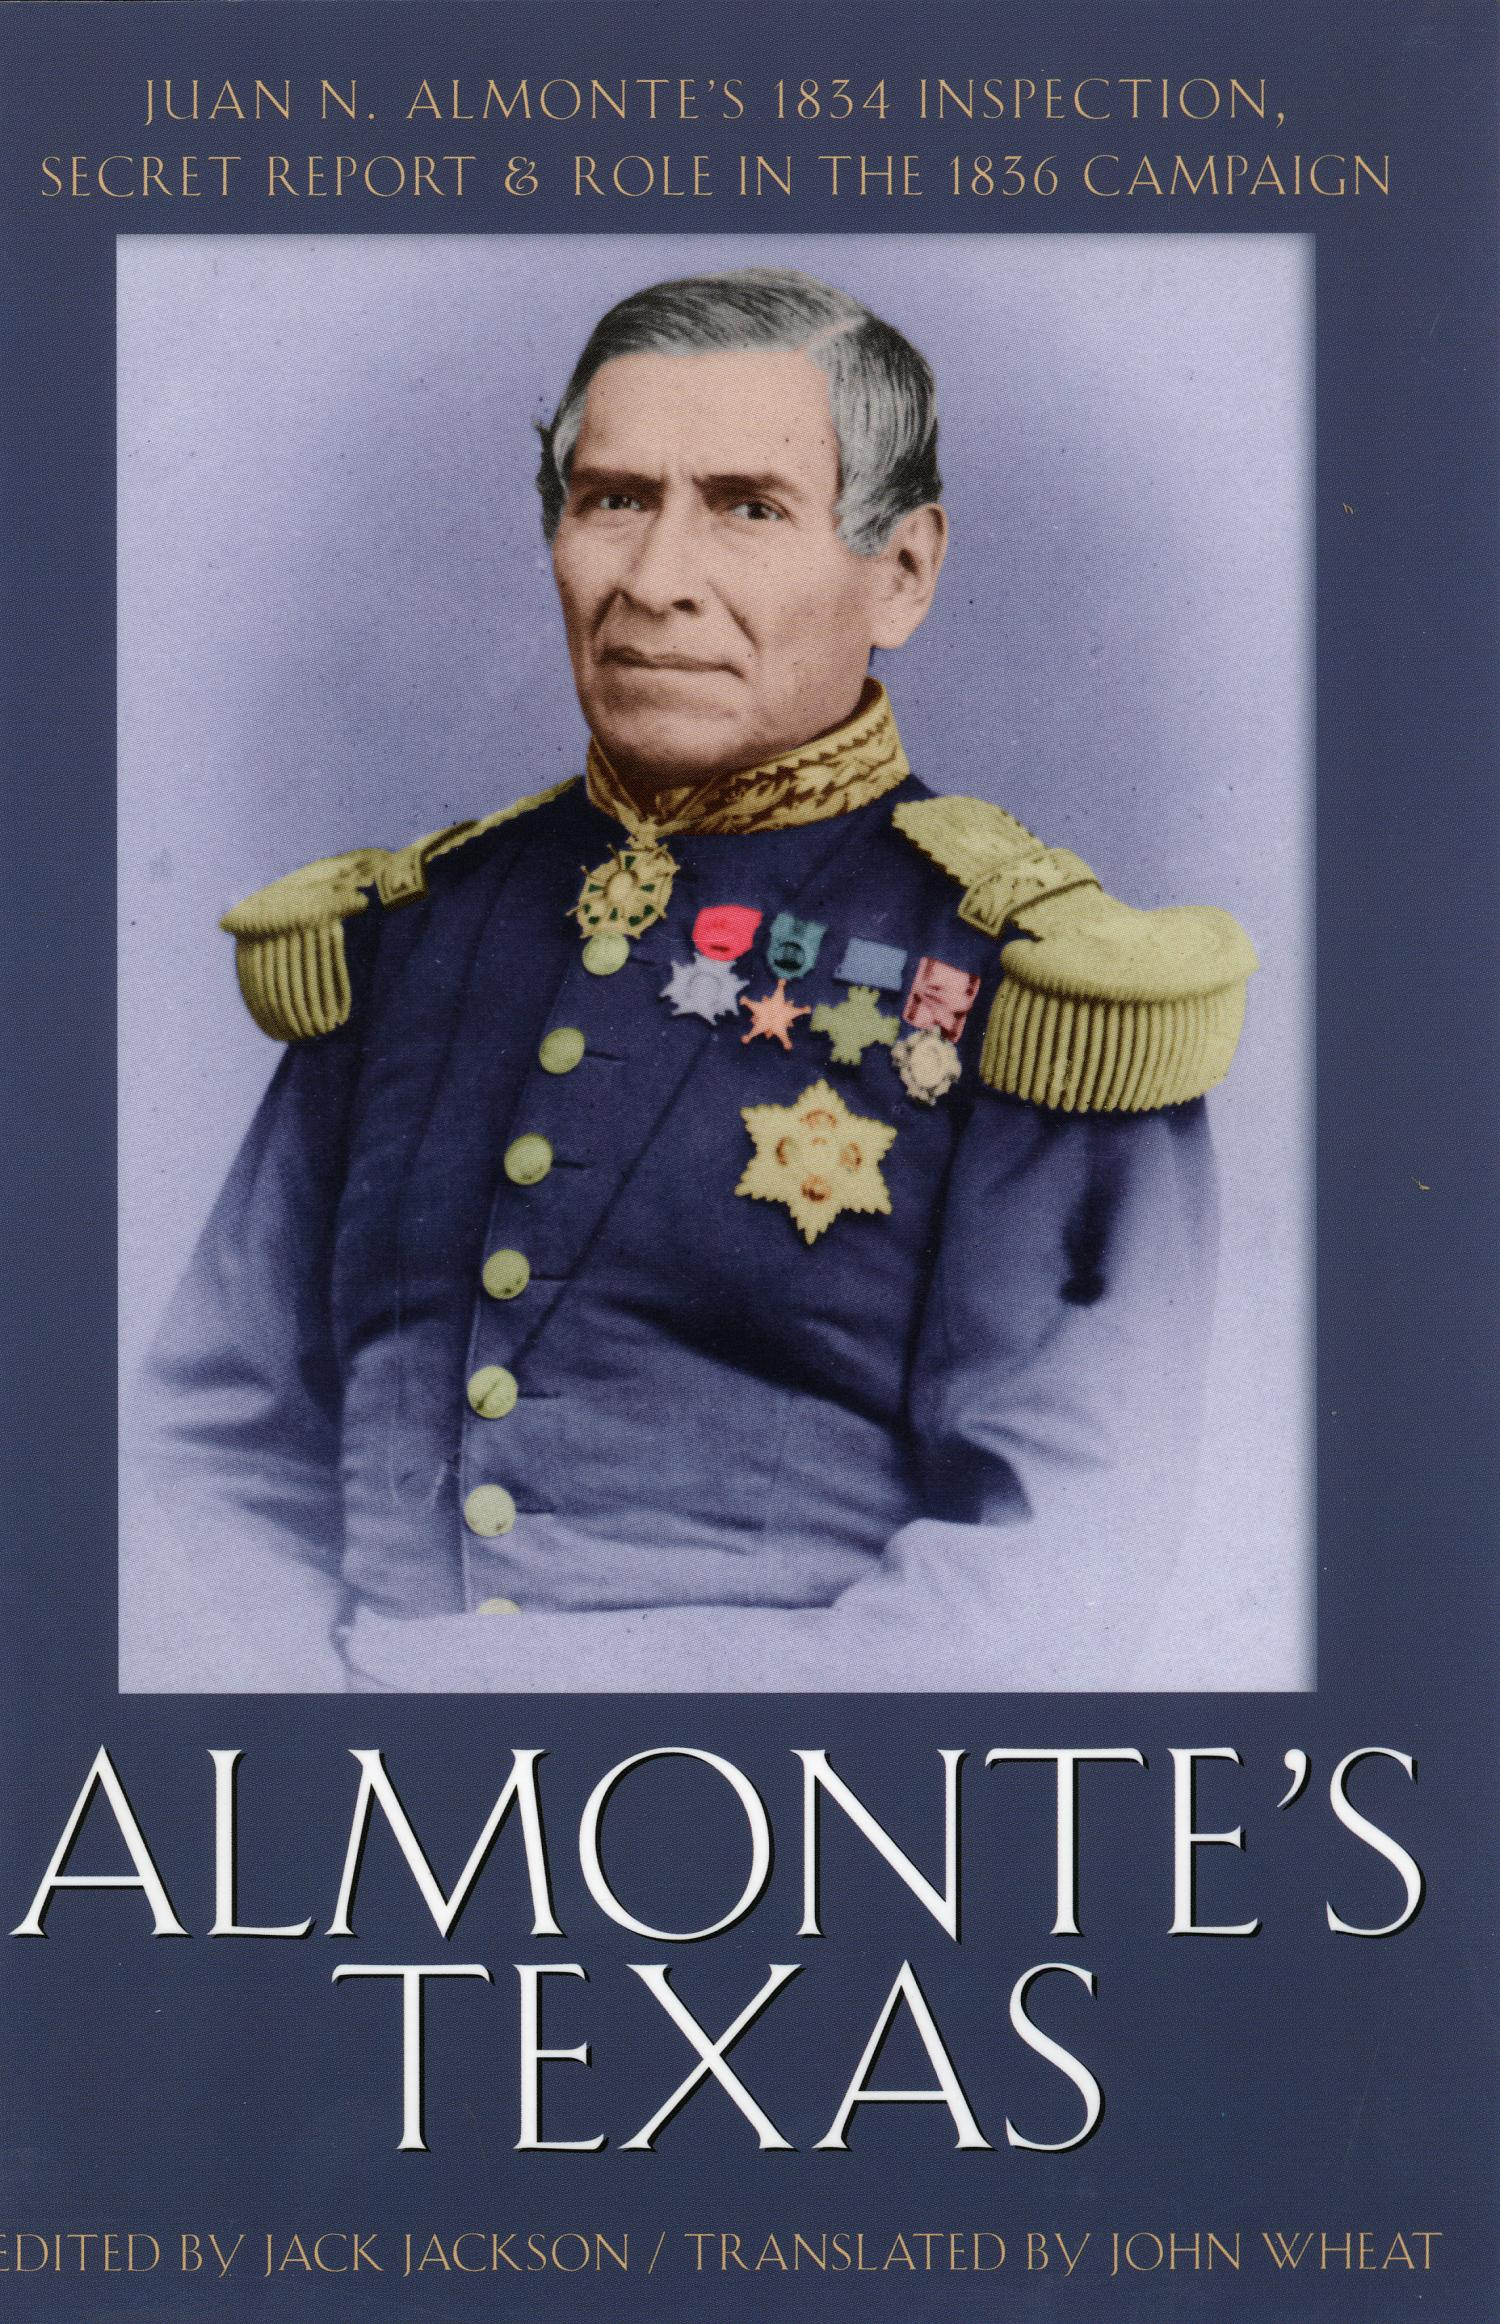 Almonte's Texas: Juan N. Almonte's 1834 Inspection, Secret Report & Role in the 1836 Campaign                                                                                                      Front Cover